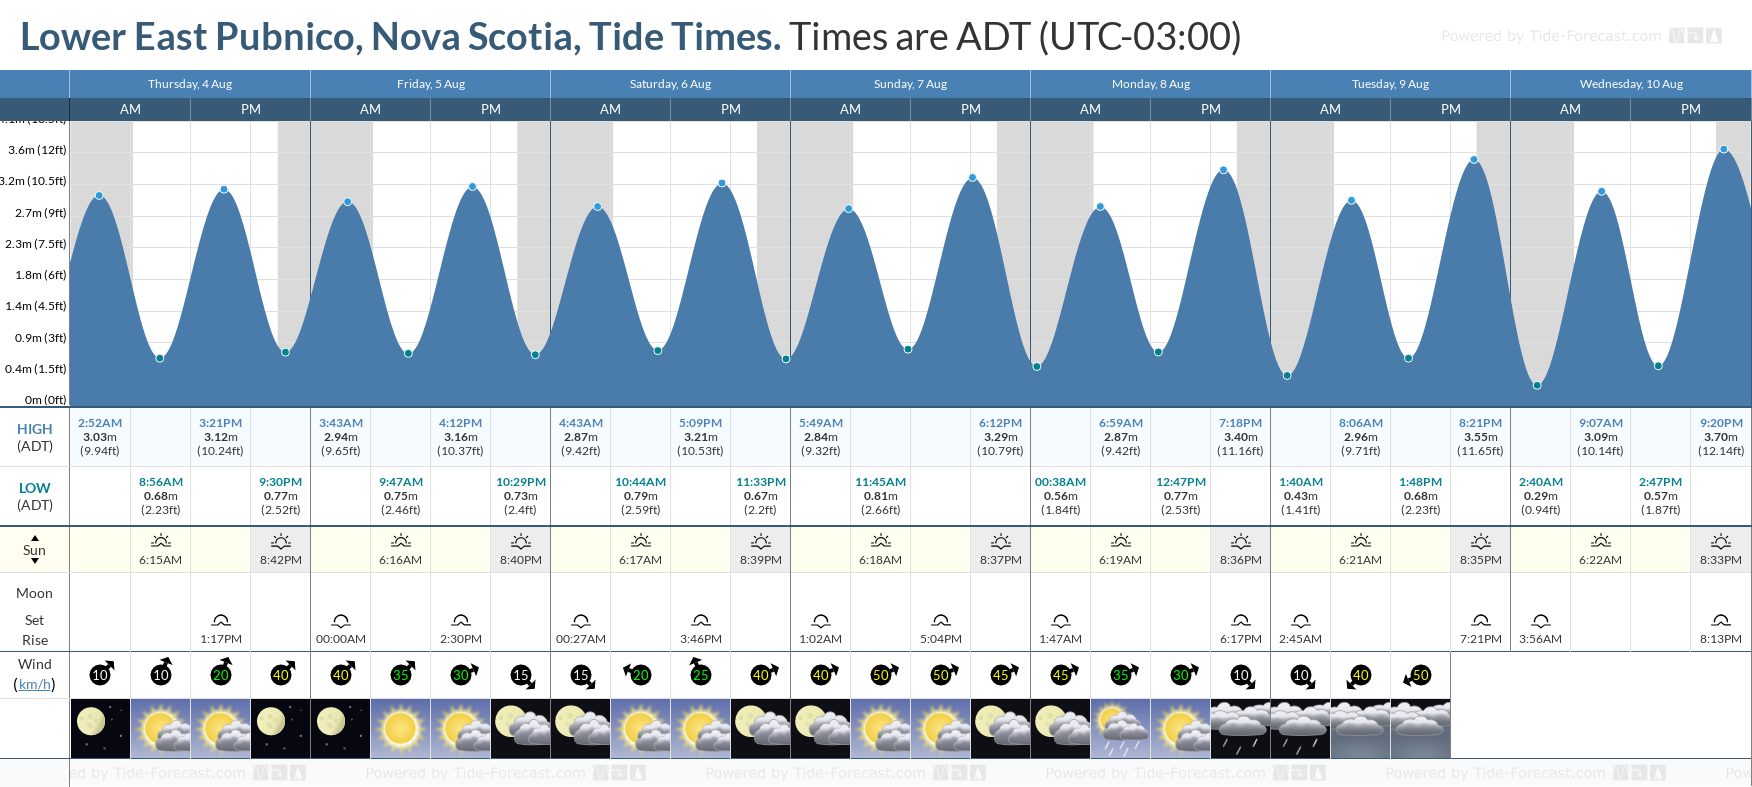 Lower East Pubnico, Nova Scotia Tide Chart including high and low tide tide times for the next 7 days